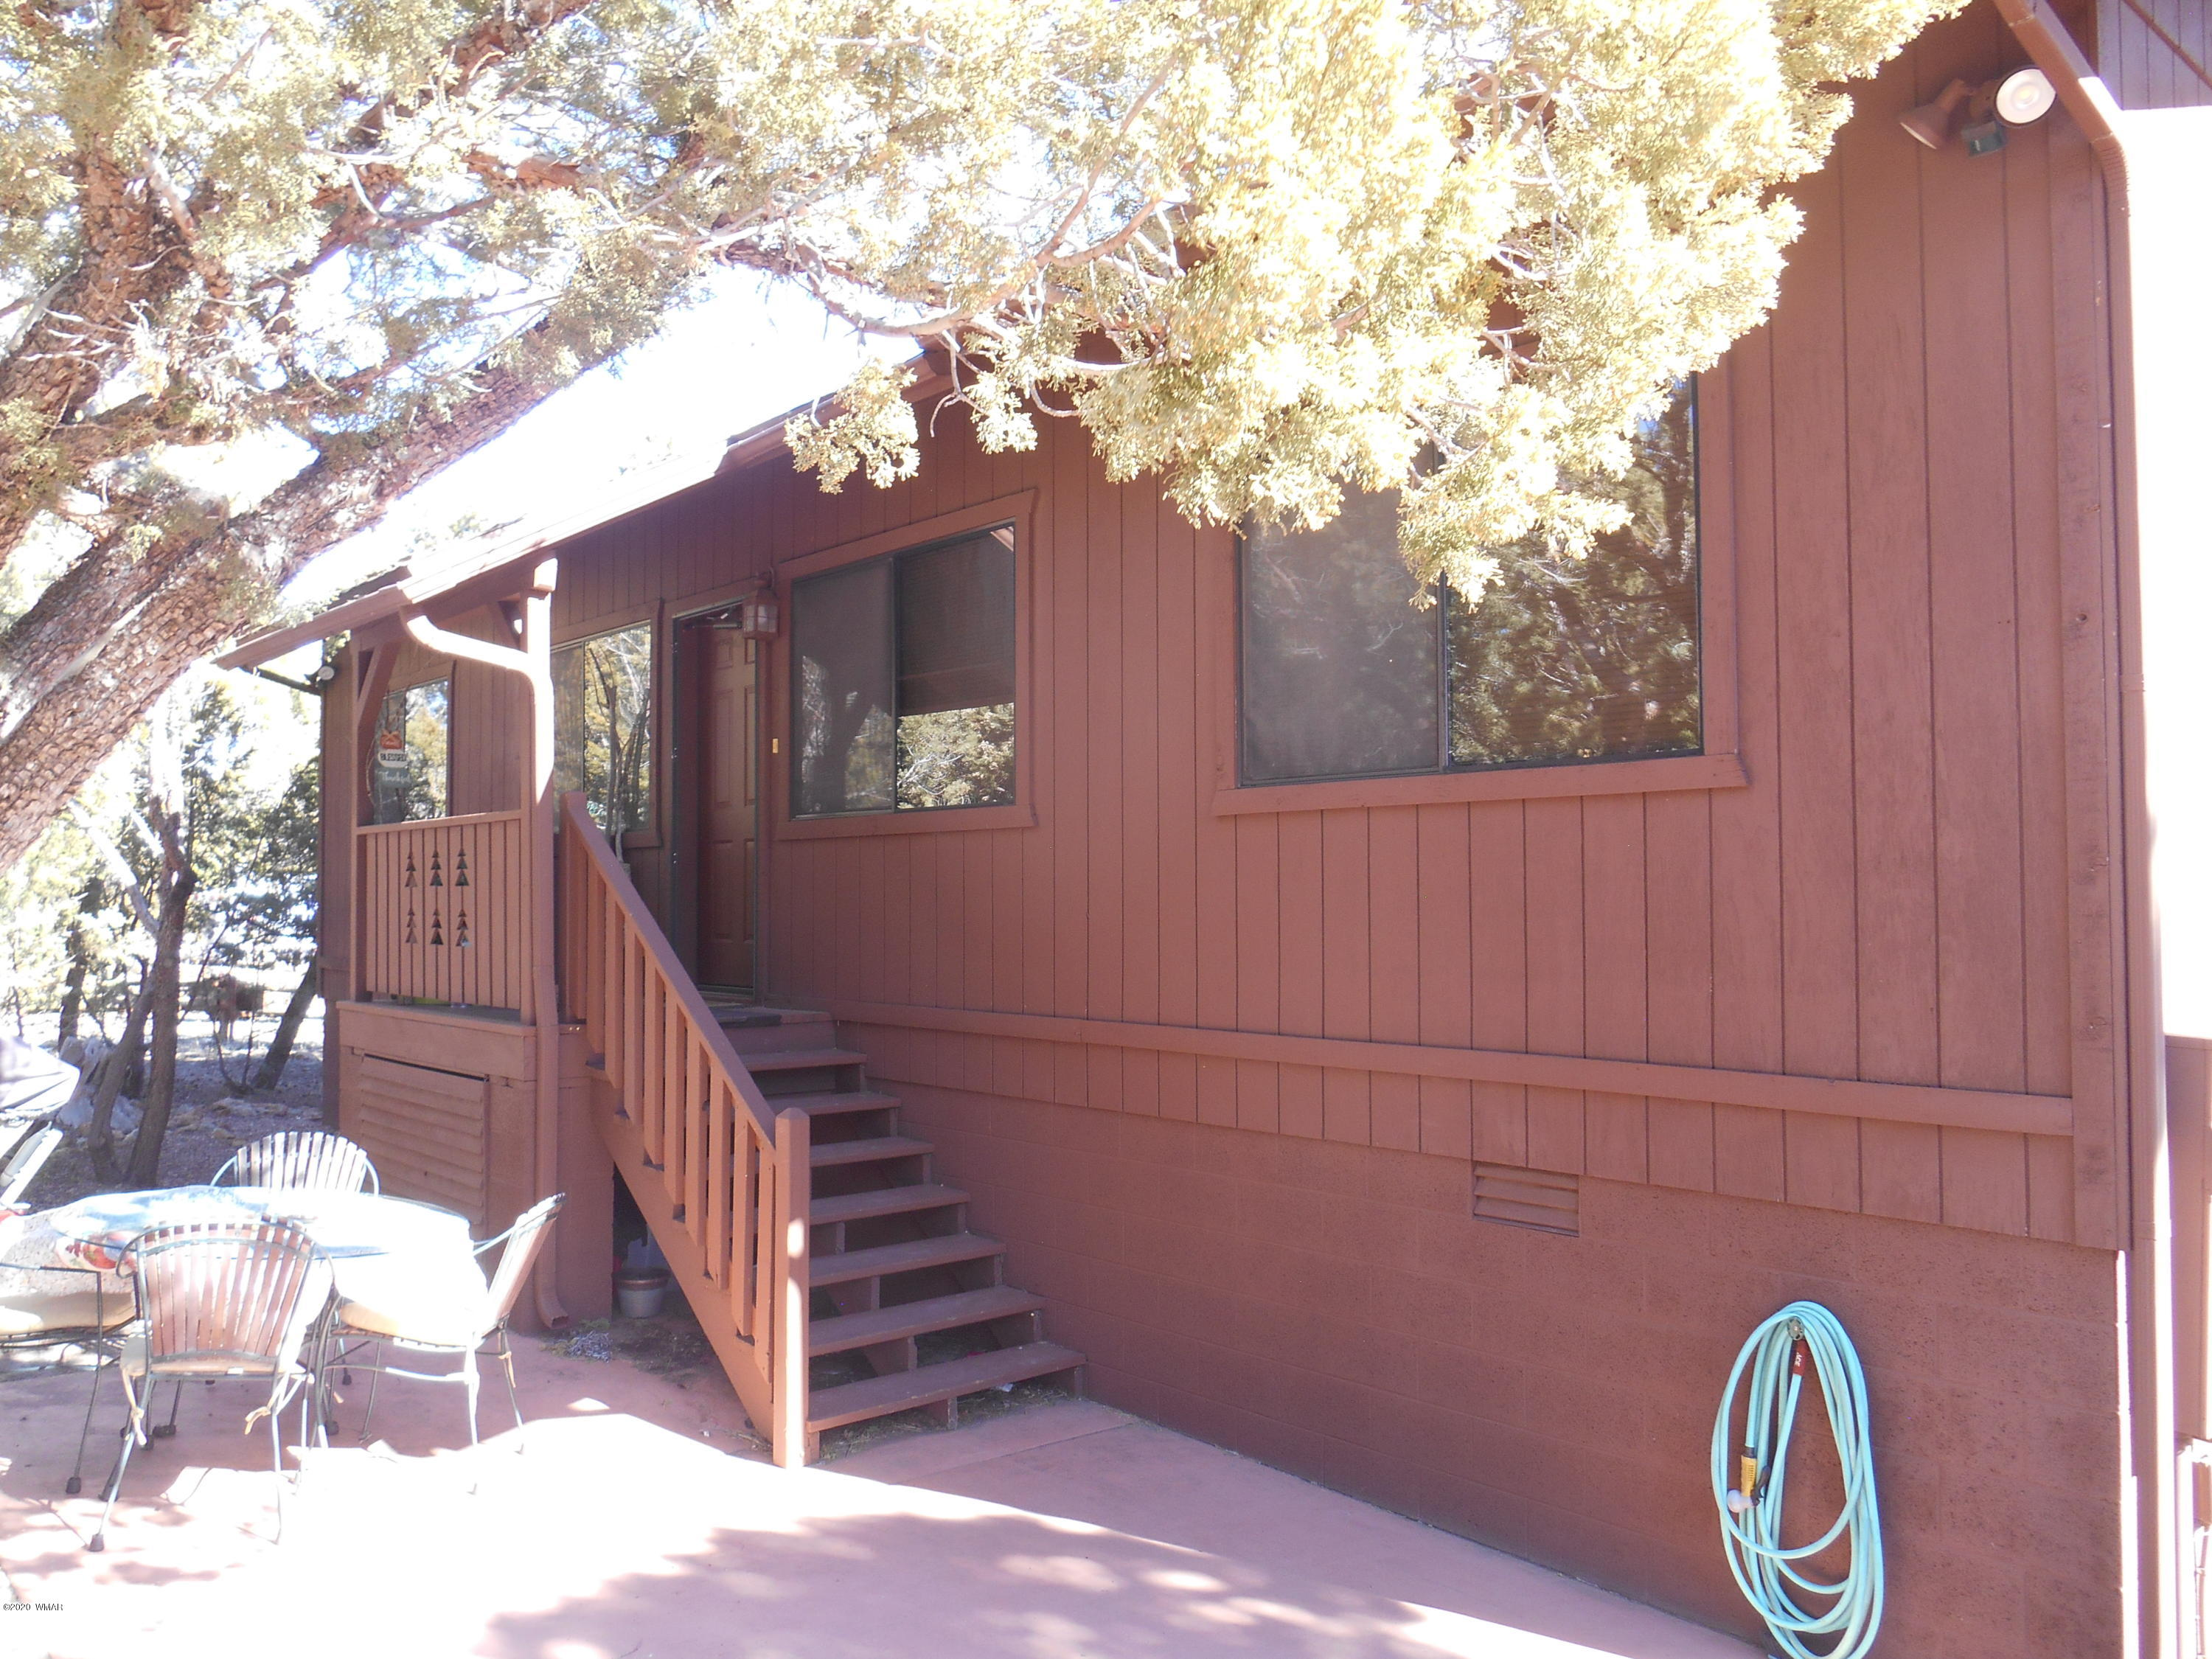 2BR/2BA cabin in High Country Pines.   Woodstove for those chilly days.   Pergo Flooring through except for carpet in the bedrooms.   Spacious basement for storage.Screened in covered back deck to enjoy the gorgeous views.  A must see.Gas cooktop in kitchen.Furniture Available outside of escrow